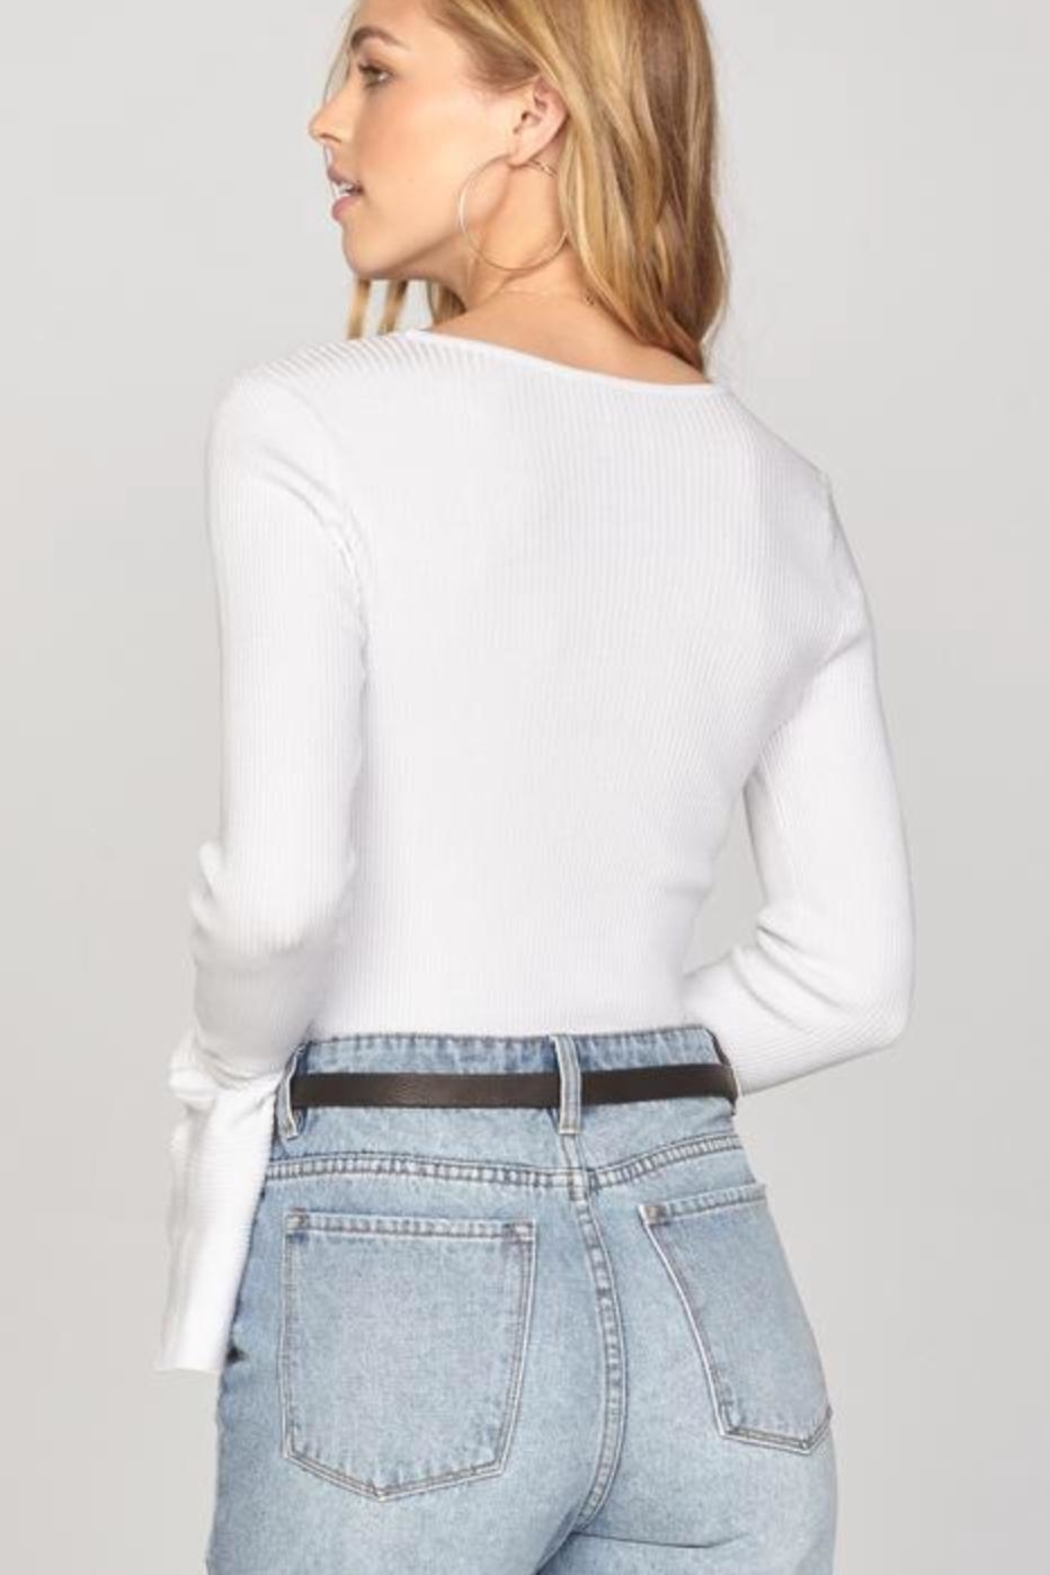 AMUSE SOCIETY Bellsleeve Crop Top - Front Full Image